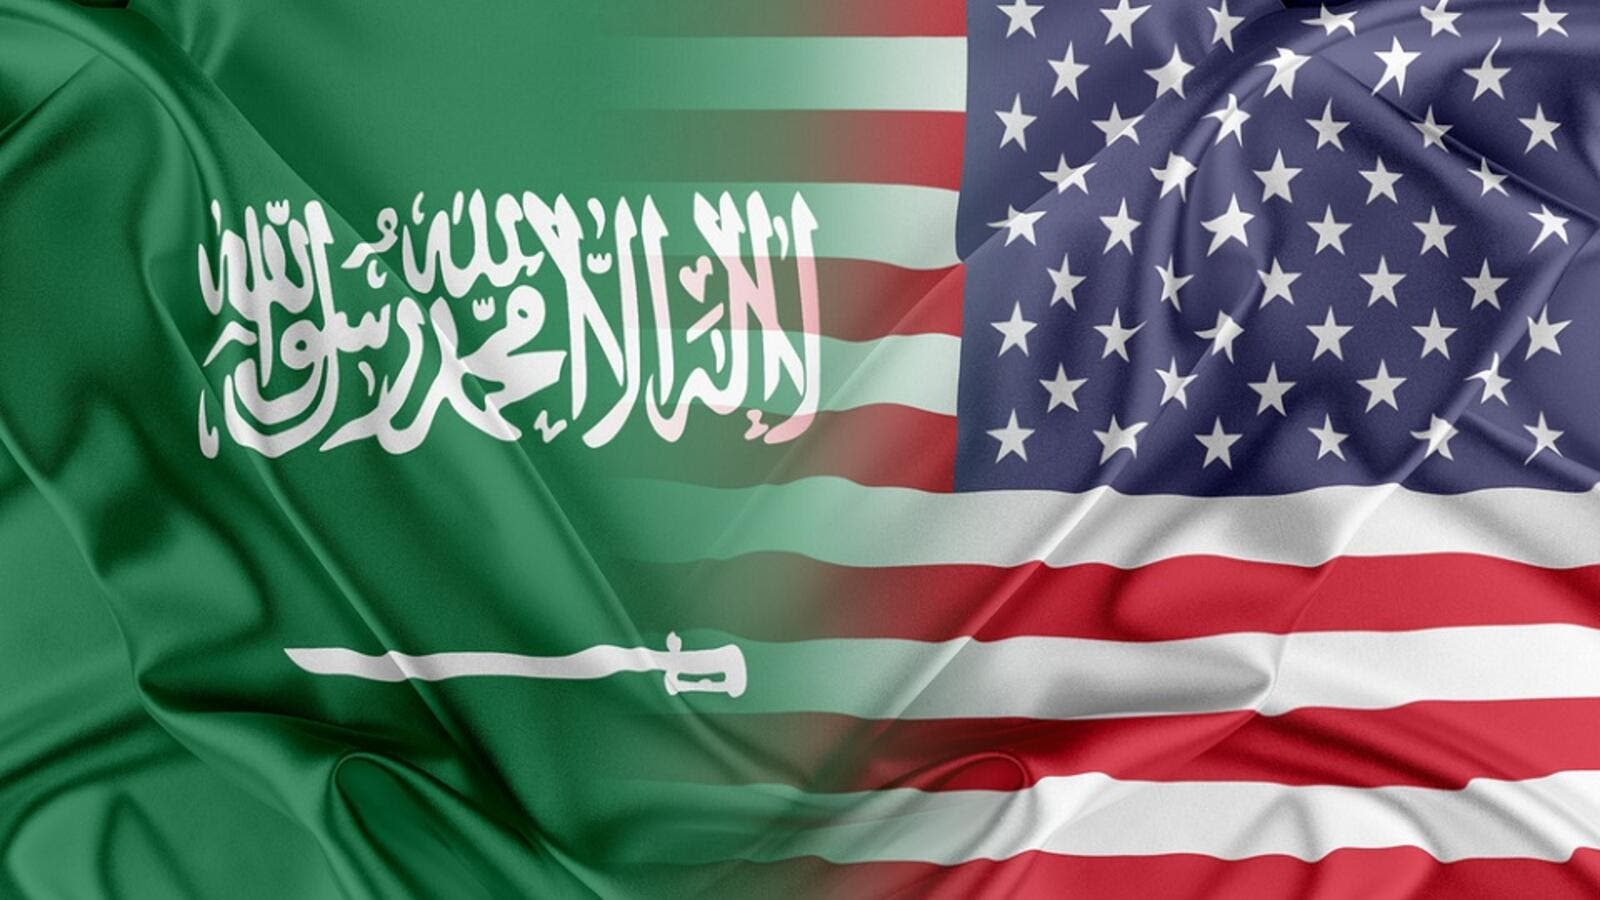 The discussions focused on bilateral relations between Riyadh and Washington